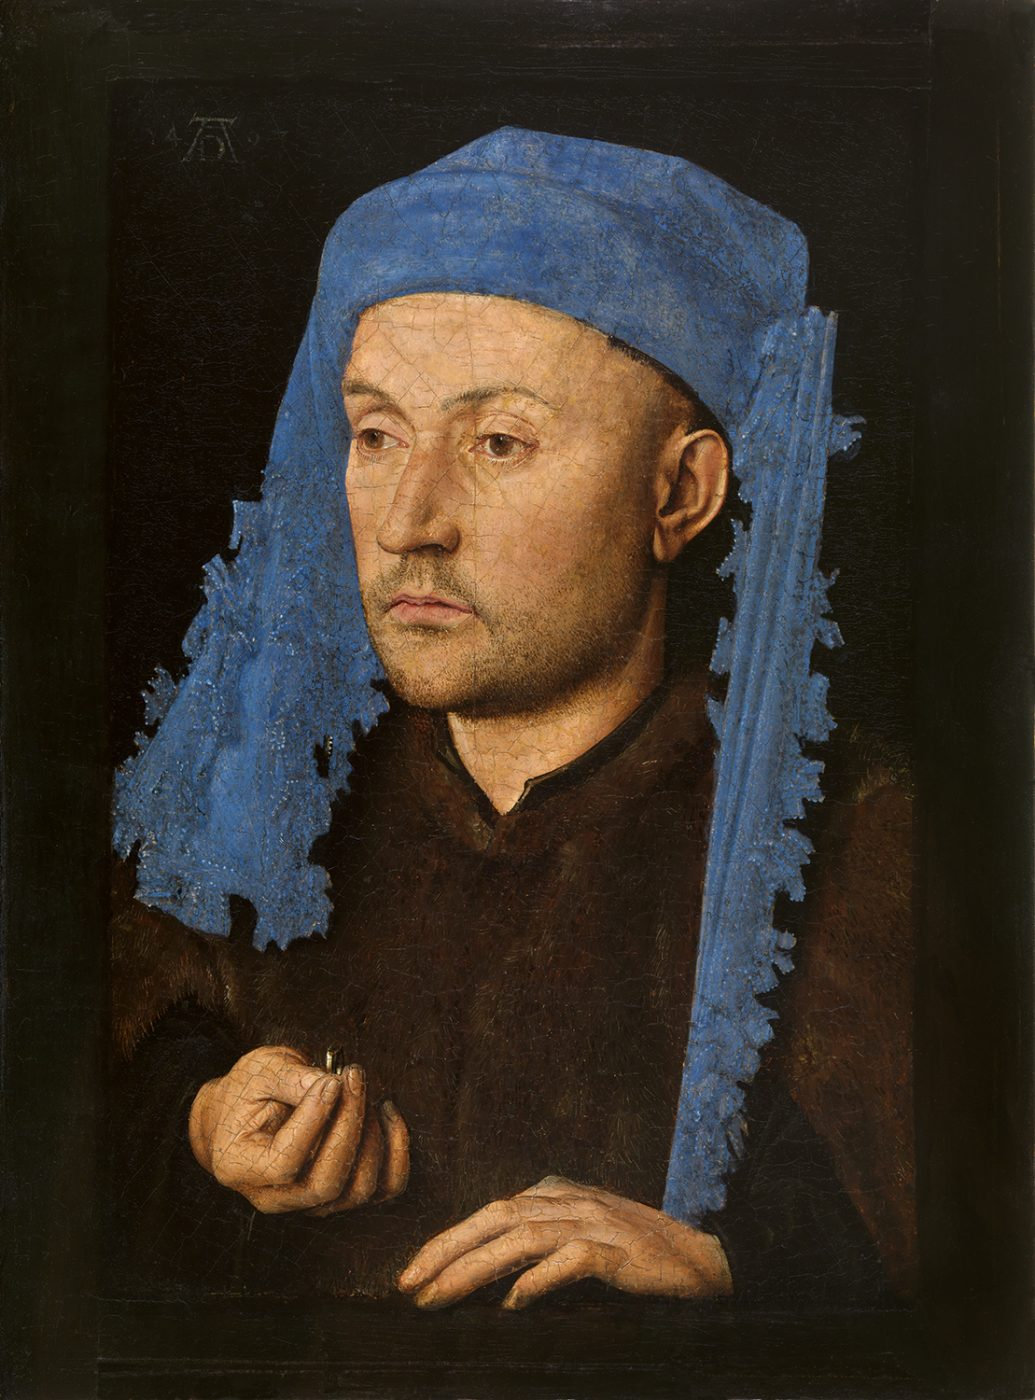 Jan van Eyck, Portrait of a Man with a Blue Chaperon, c. 1428−30 (Muzeul National Brukenthal, Sibiu, Romania)